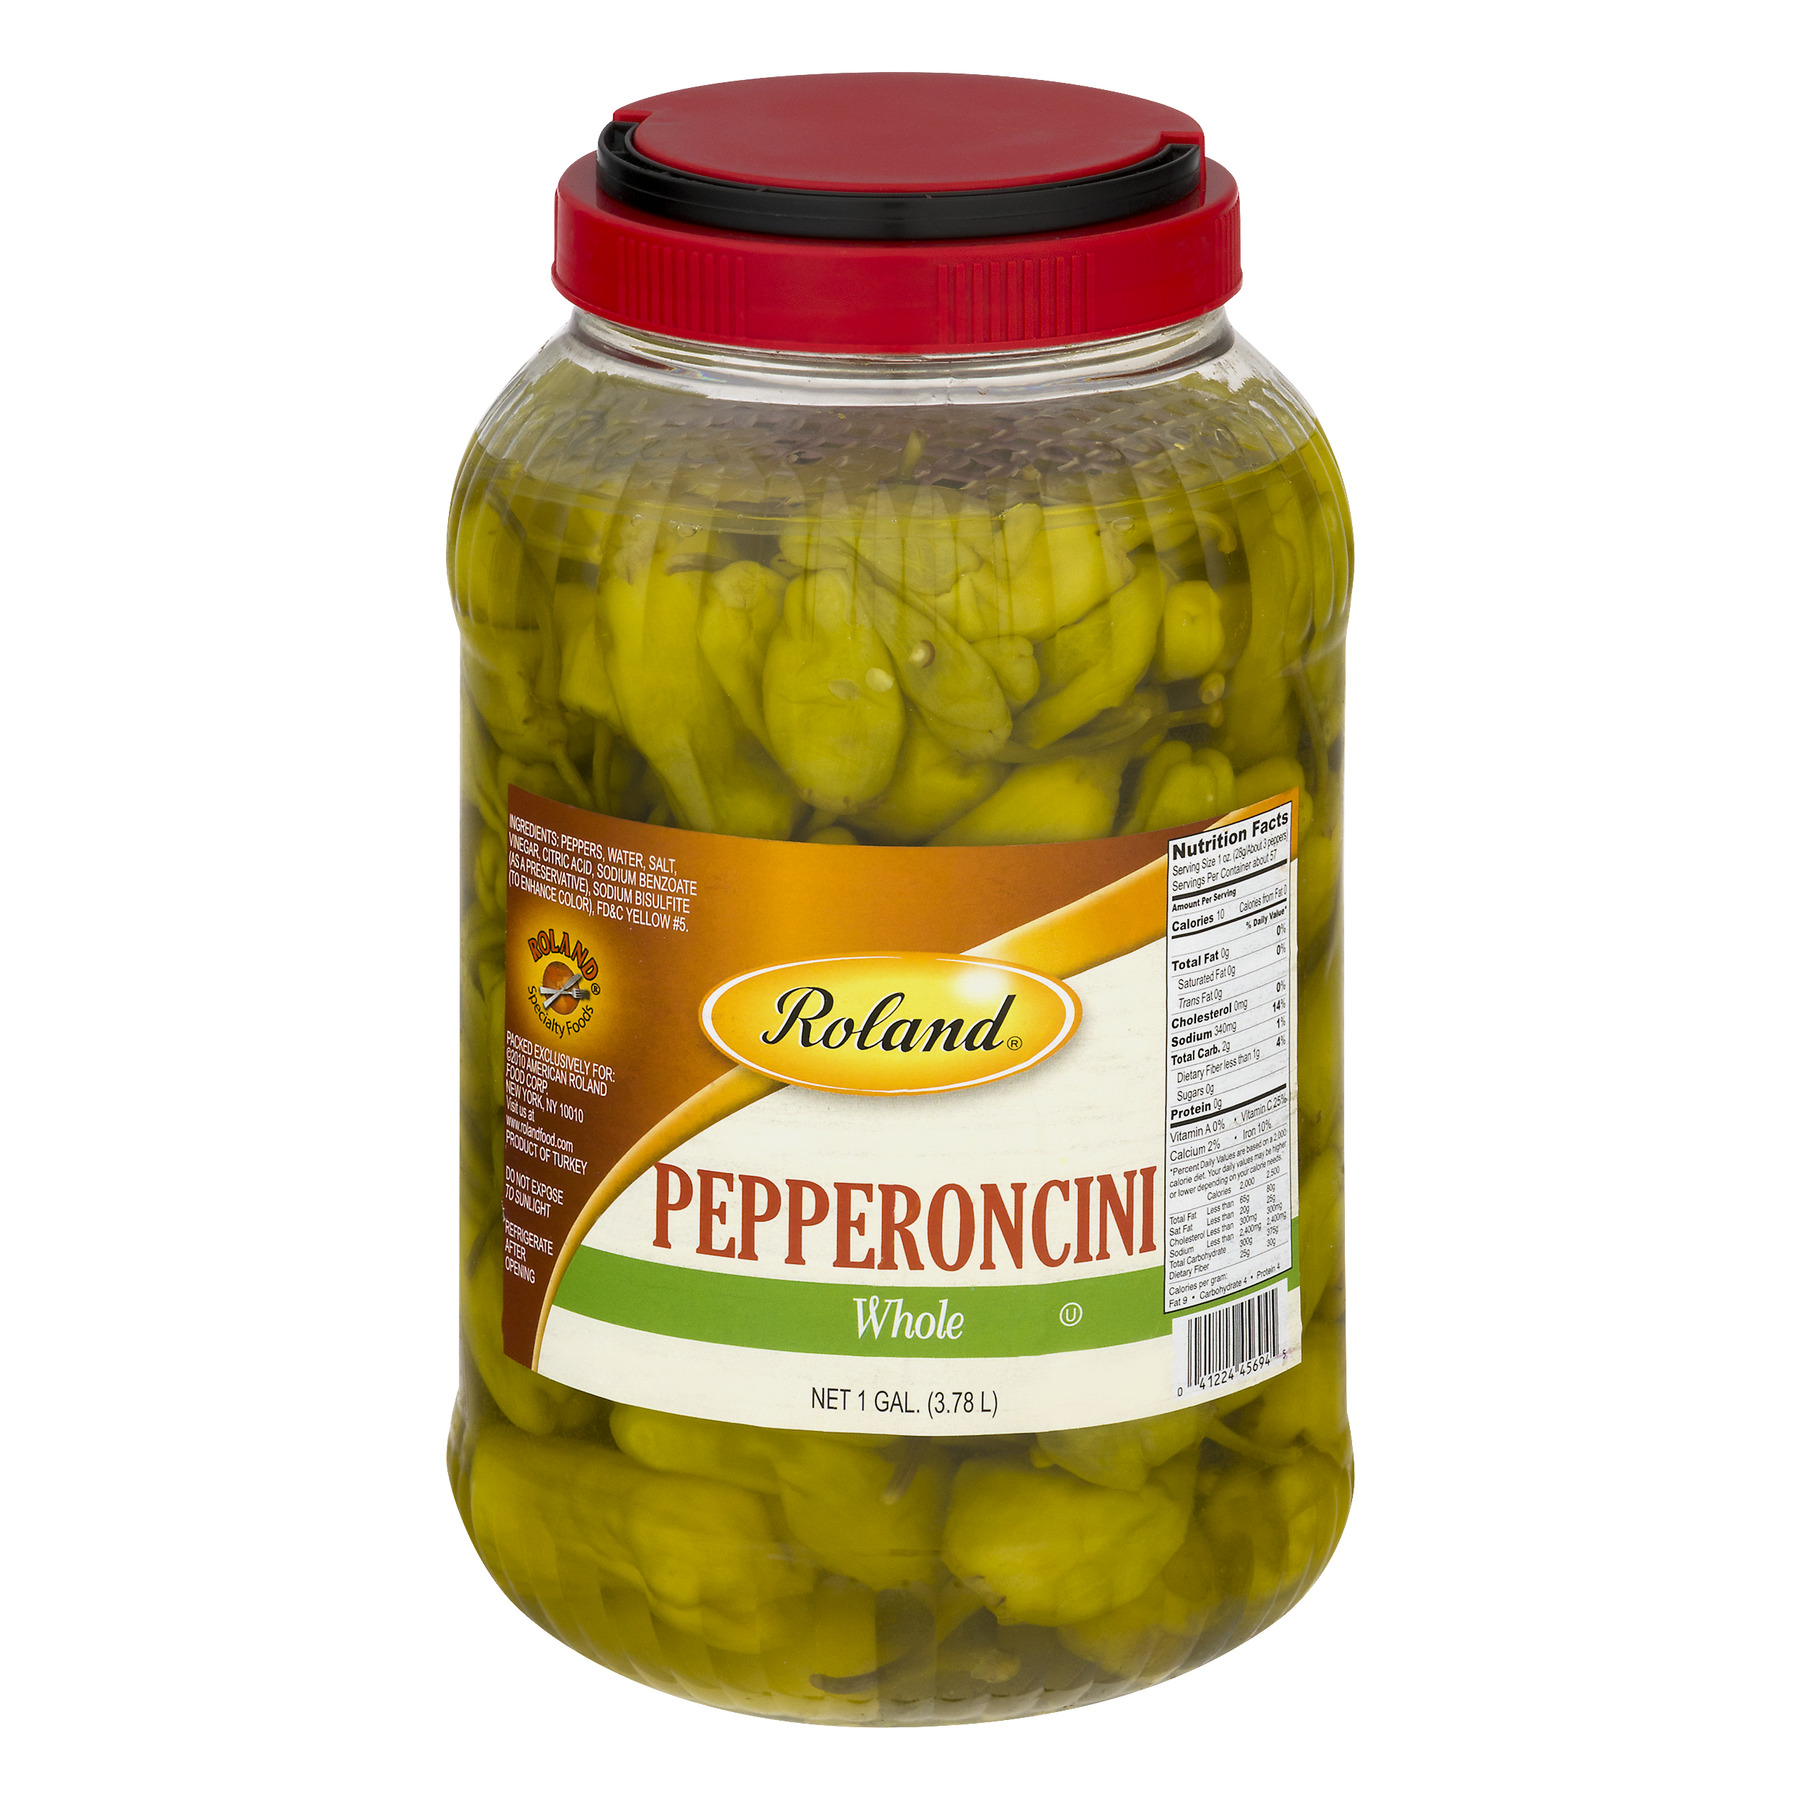 Roland Whole Pepperoncini, 1 Gal